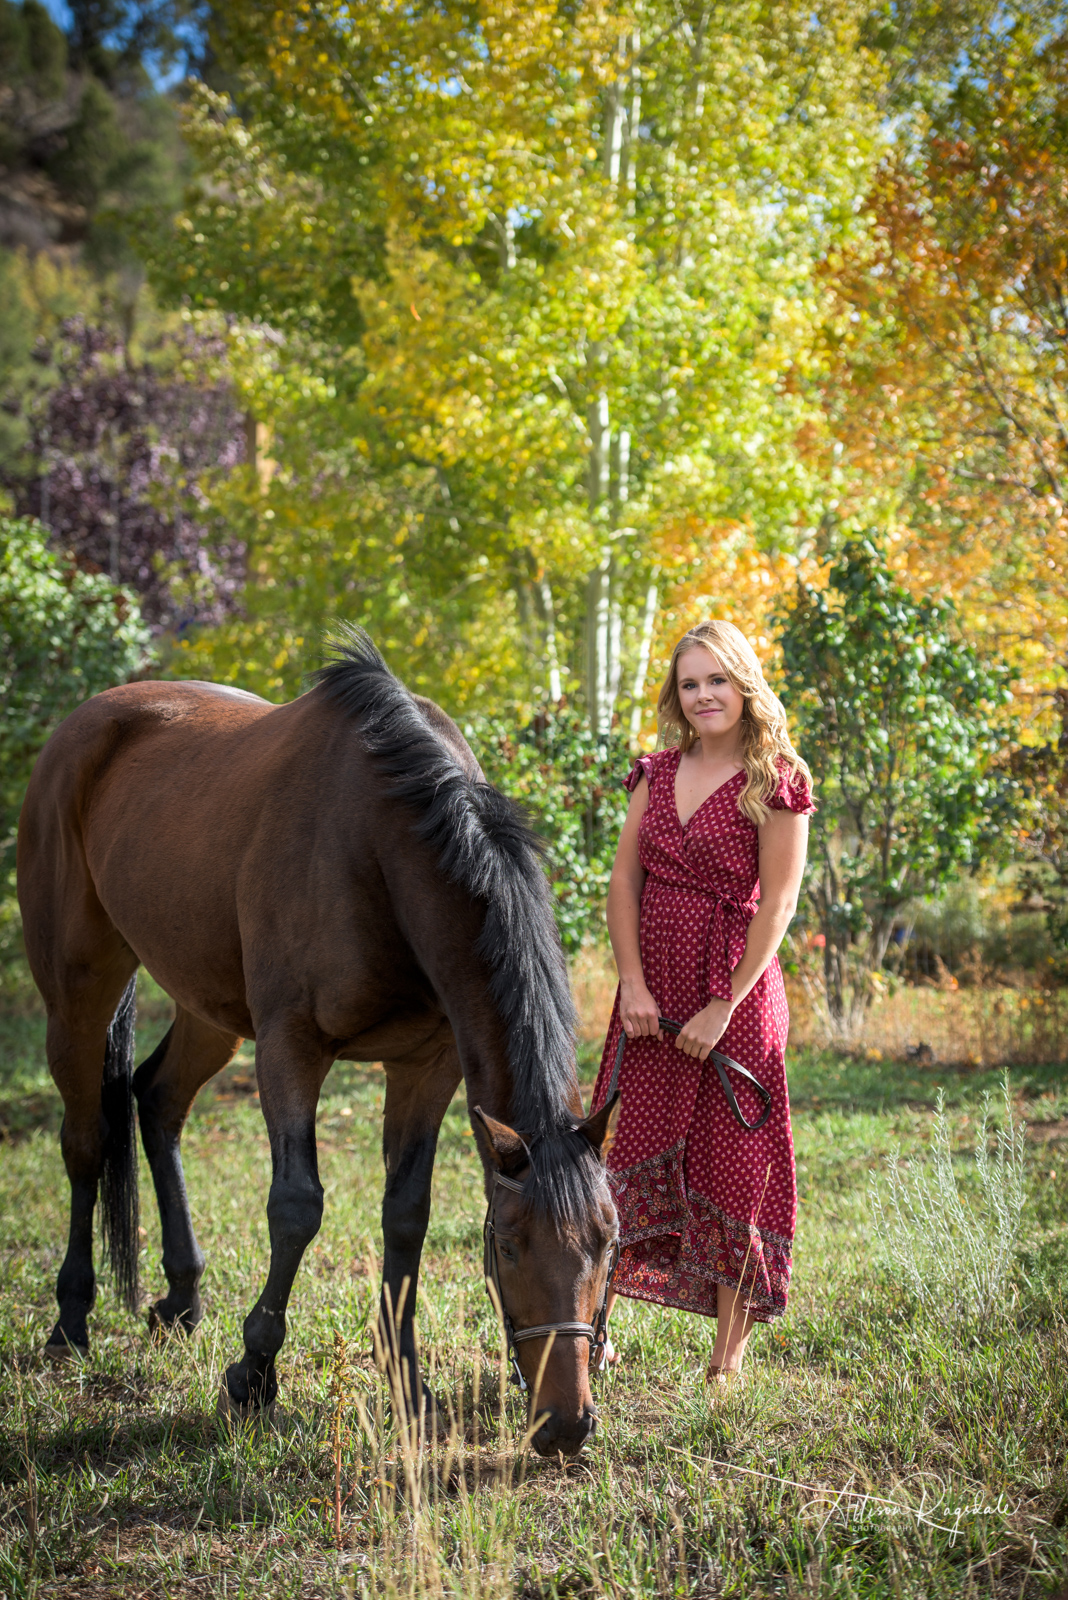 Senior pictures with horses outdoor professional portraits